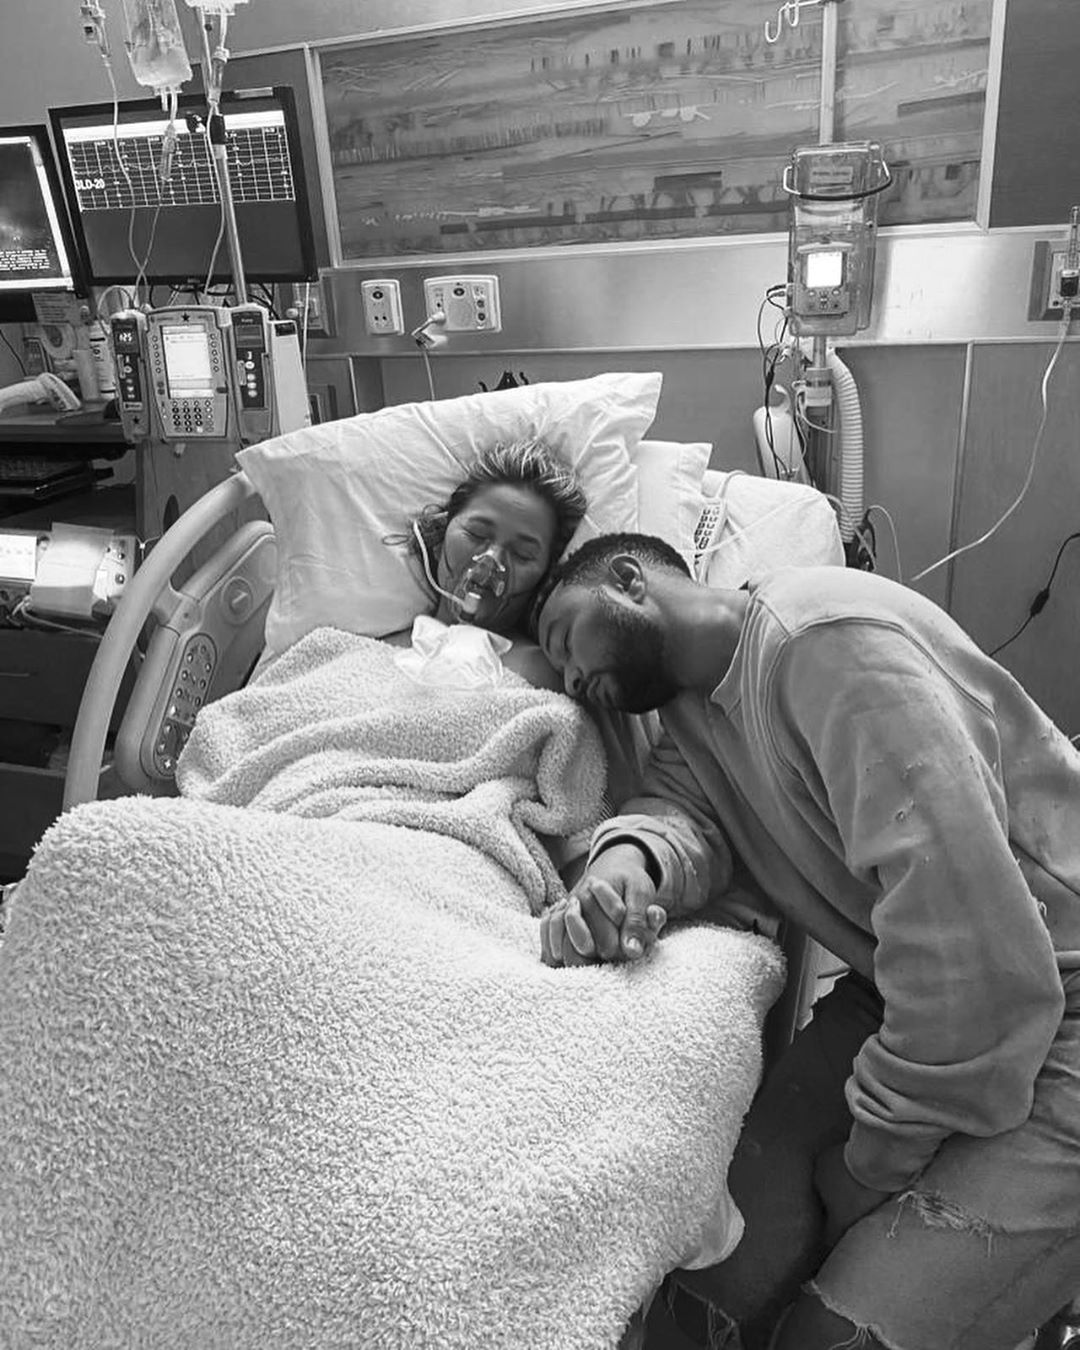 John Legend and wife, Chrissy Teigen, mourn as they lose newborn son moment after birth